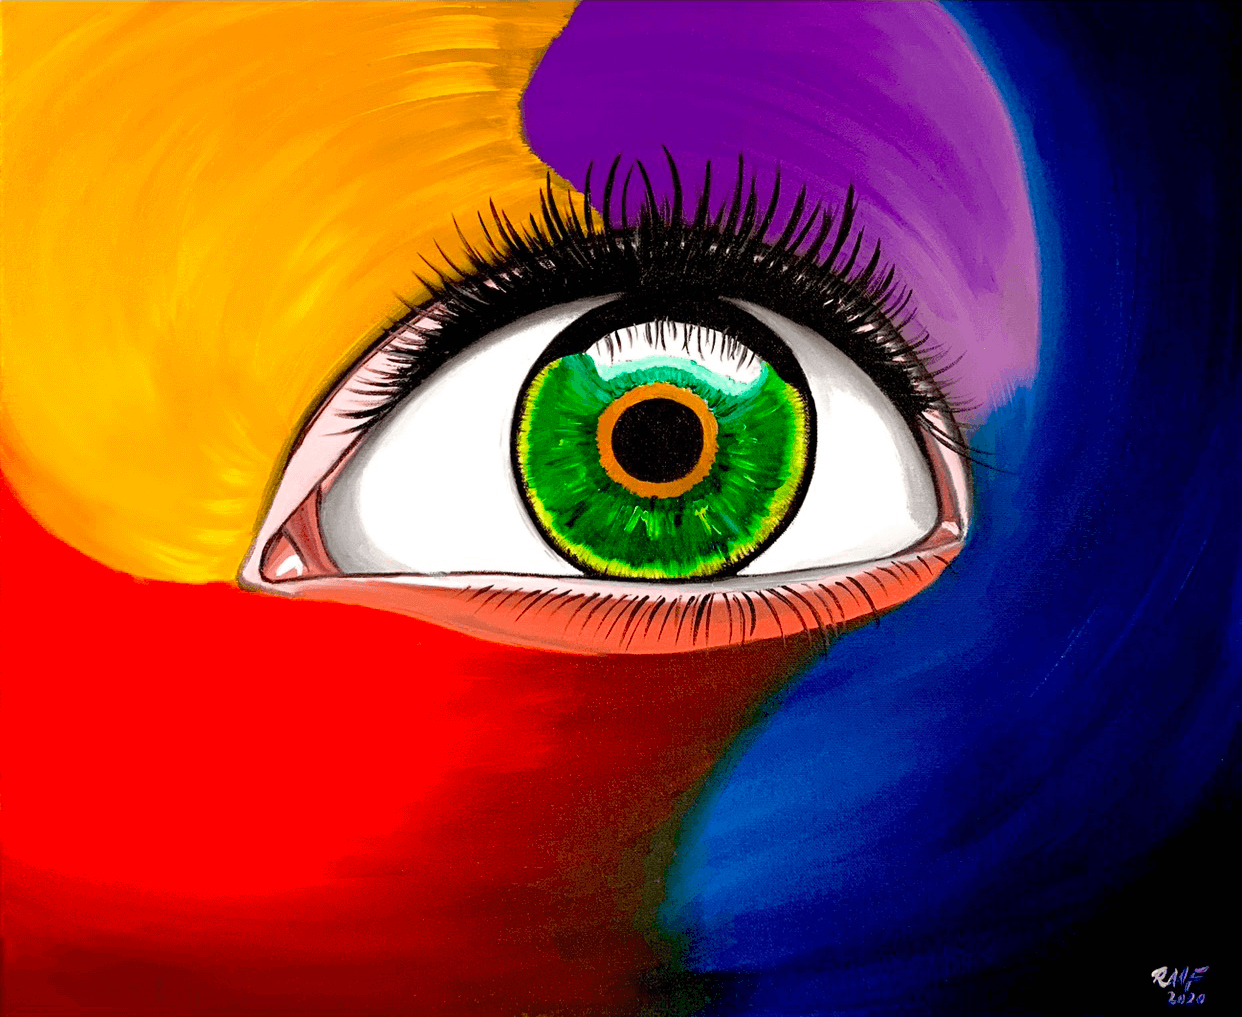 The_Eye_abstract_painting_by_raafpaintings